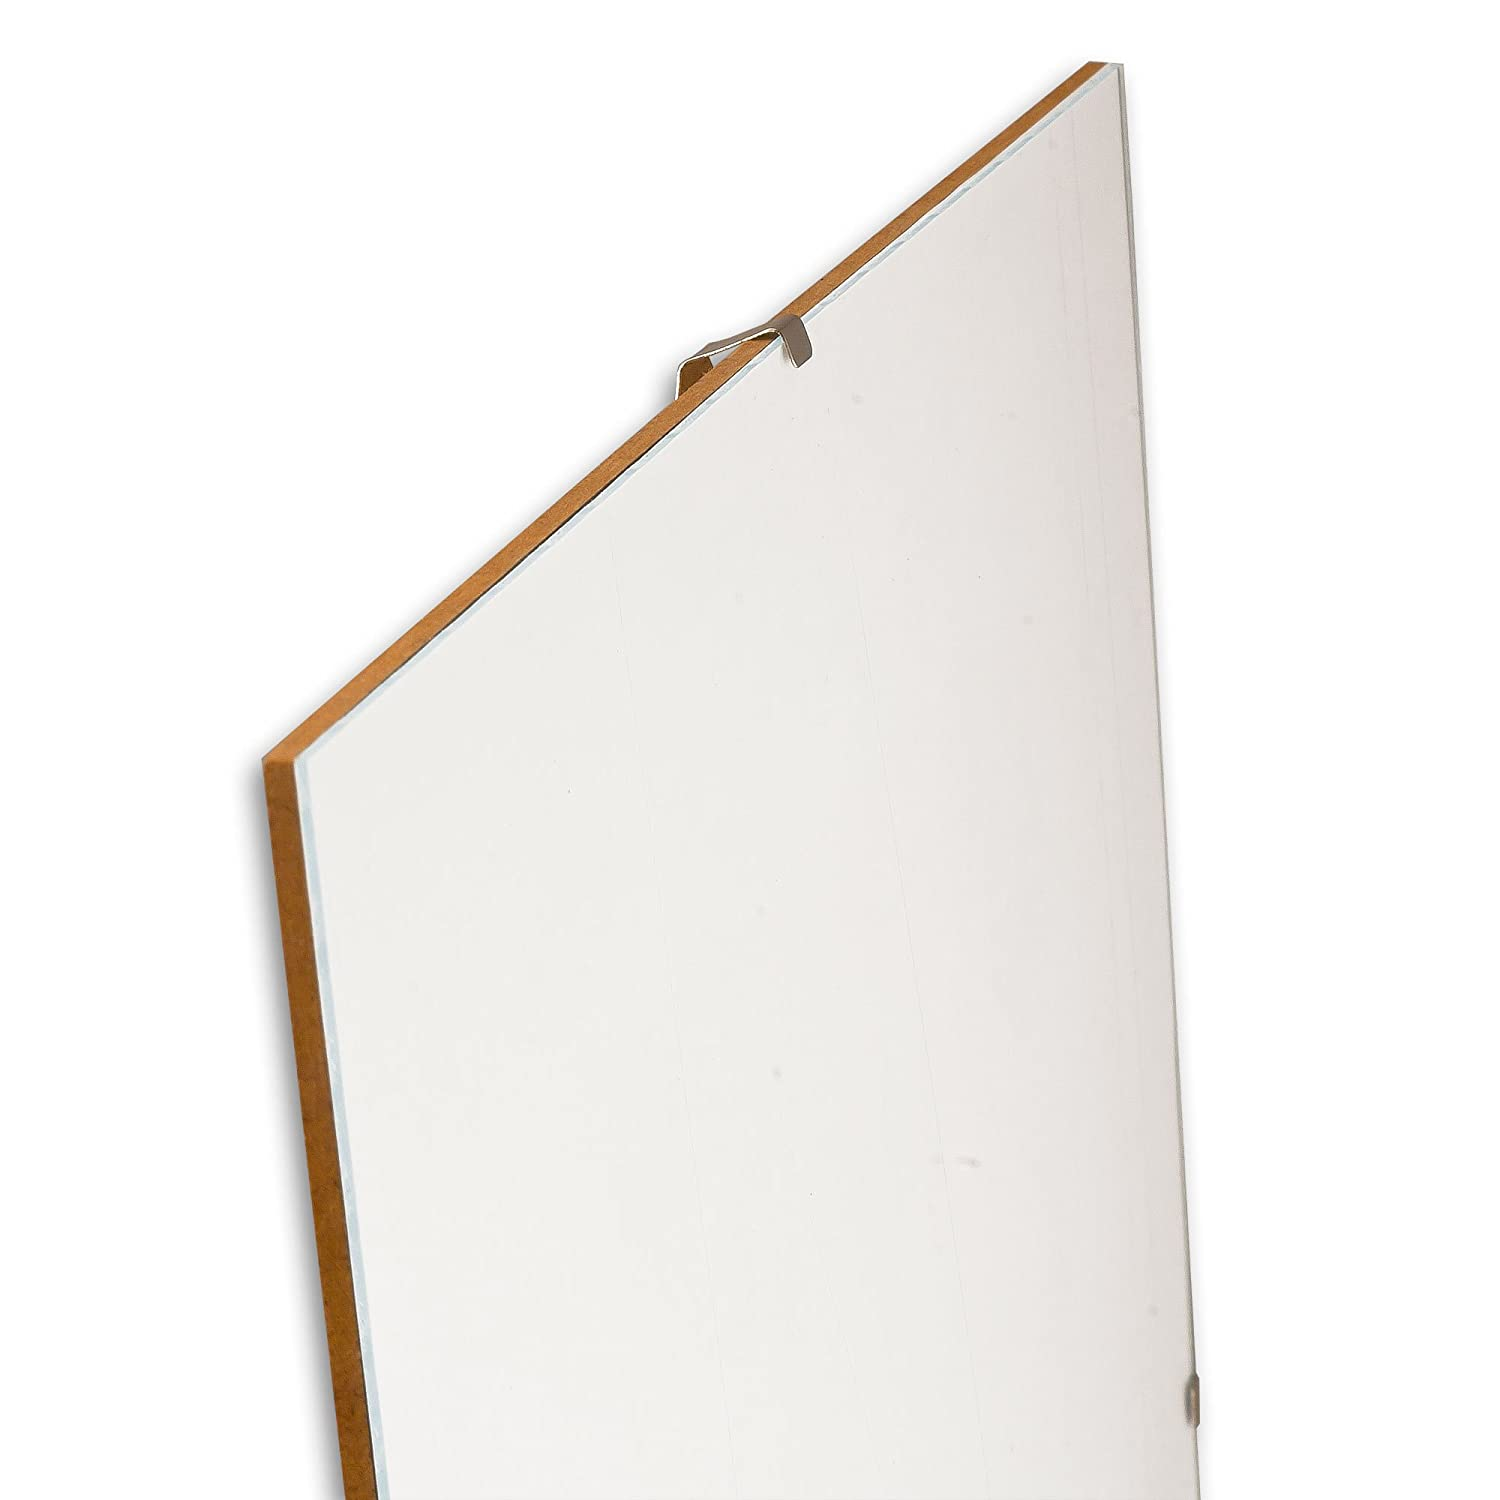 clip frame for photograph a3 for home and office high quality a 3 picture poster photo frames amazoncouk kitchen home